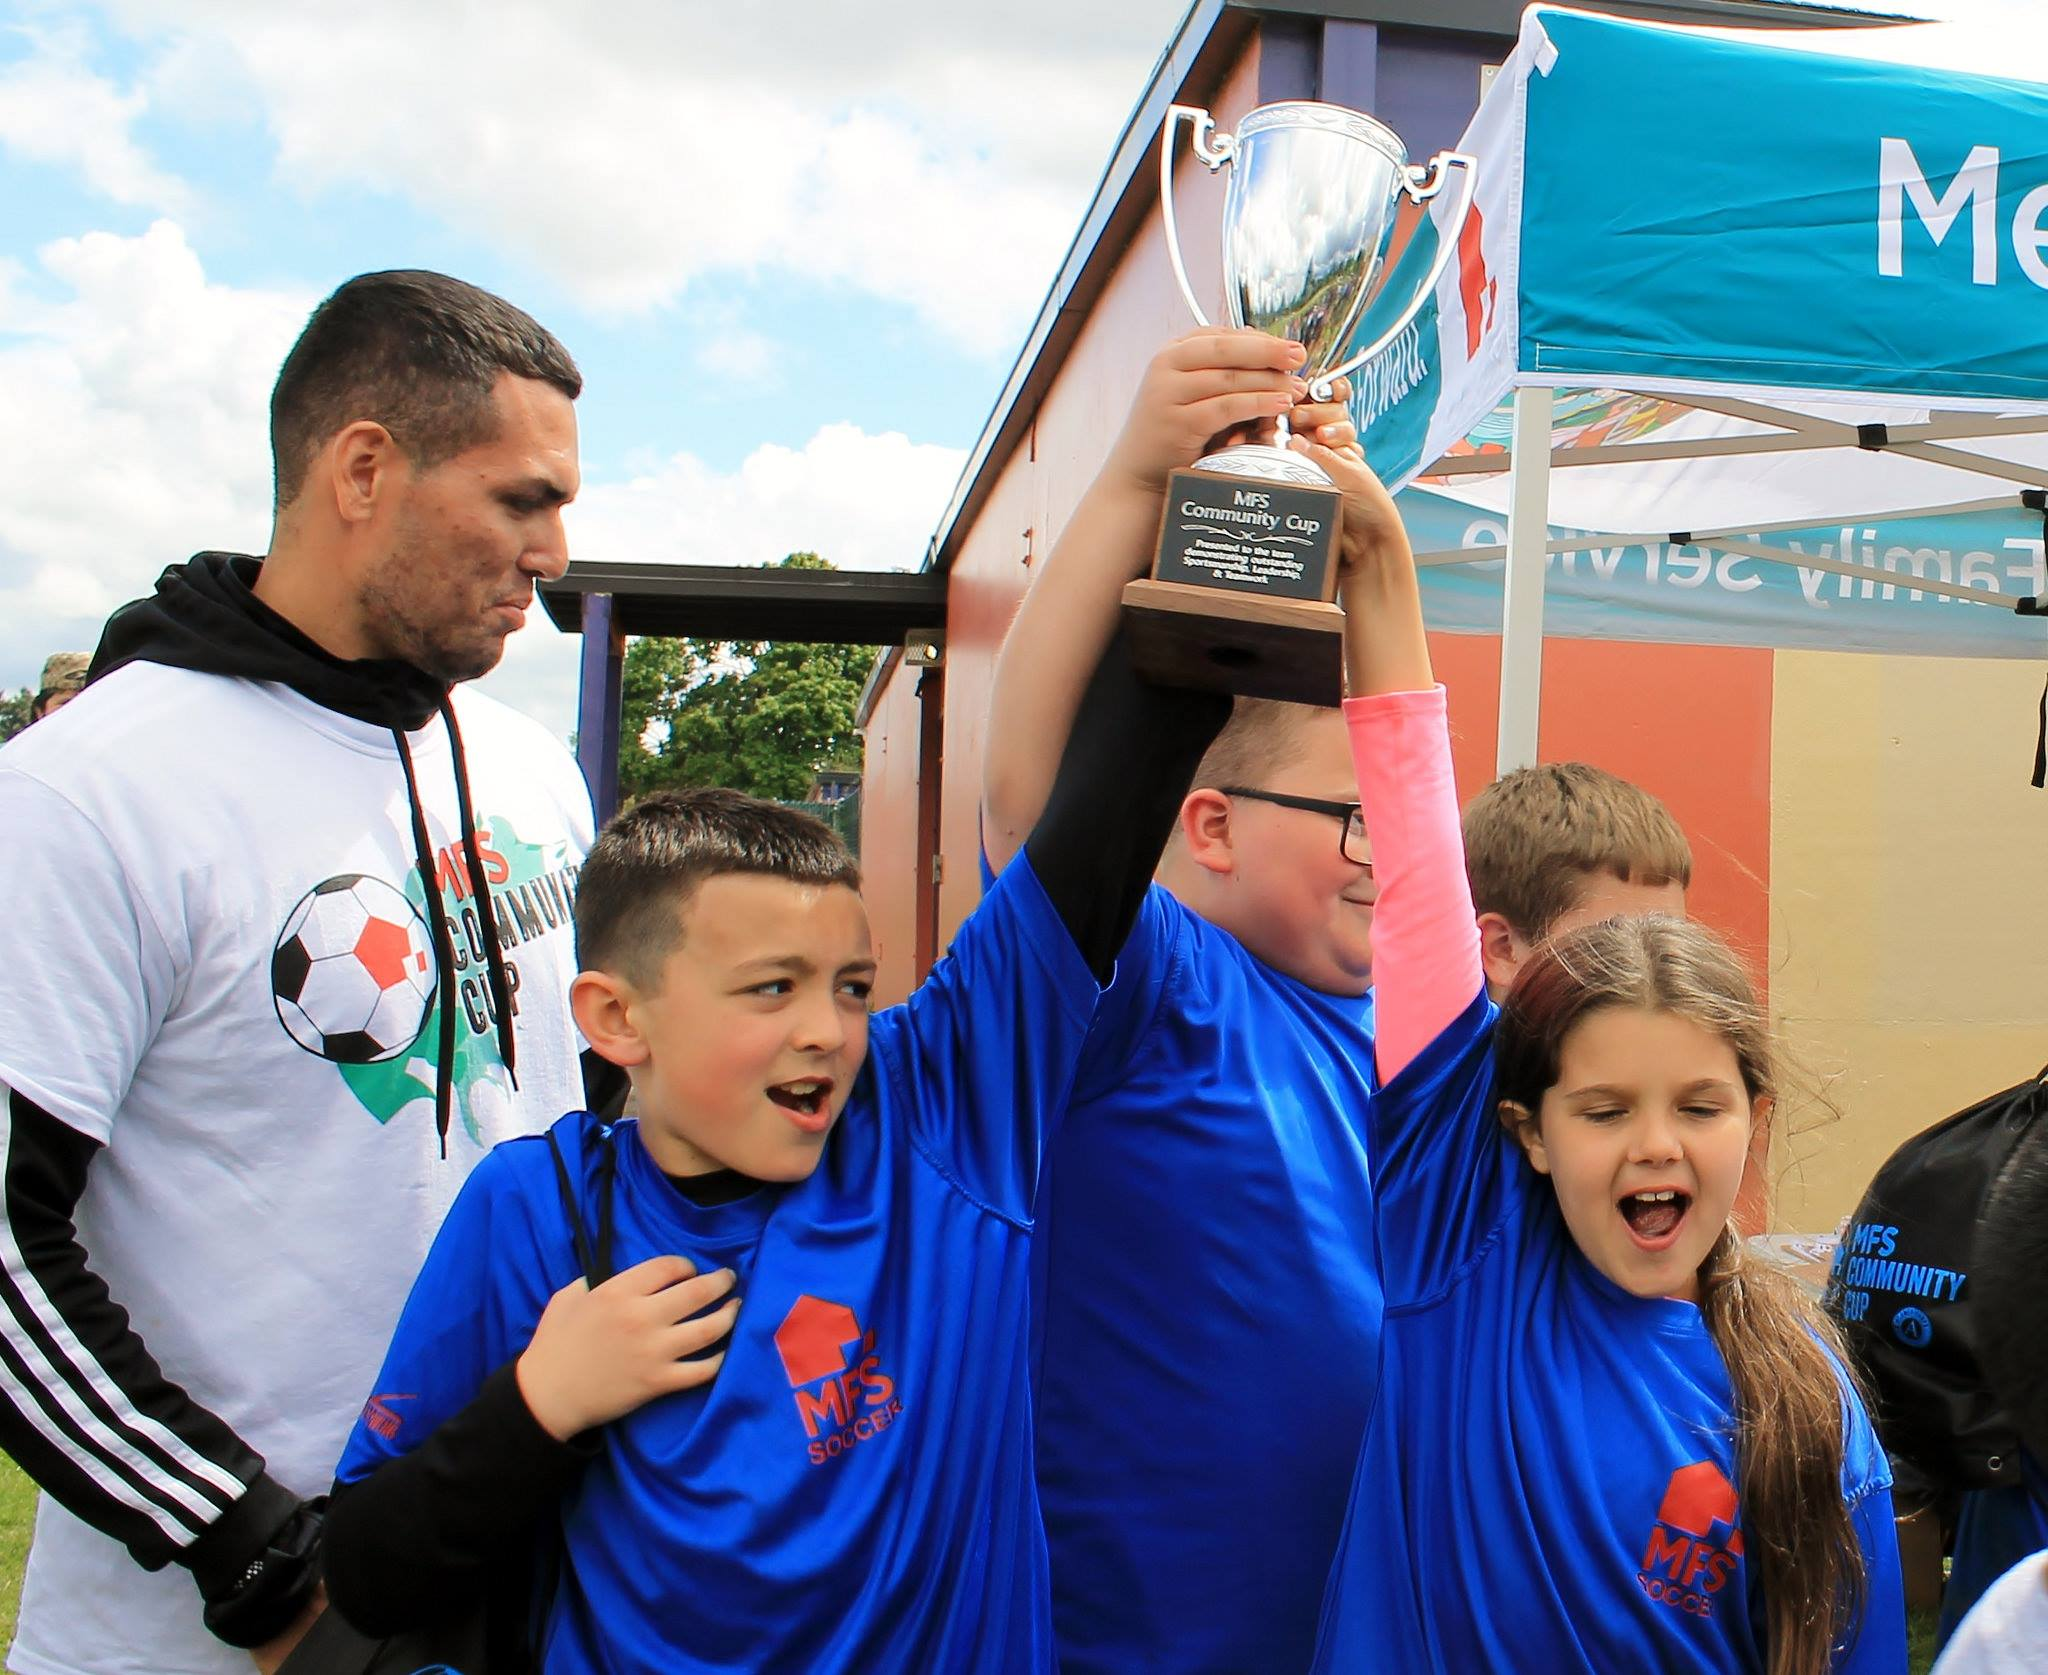 Community Cup - Holding up trophy